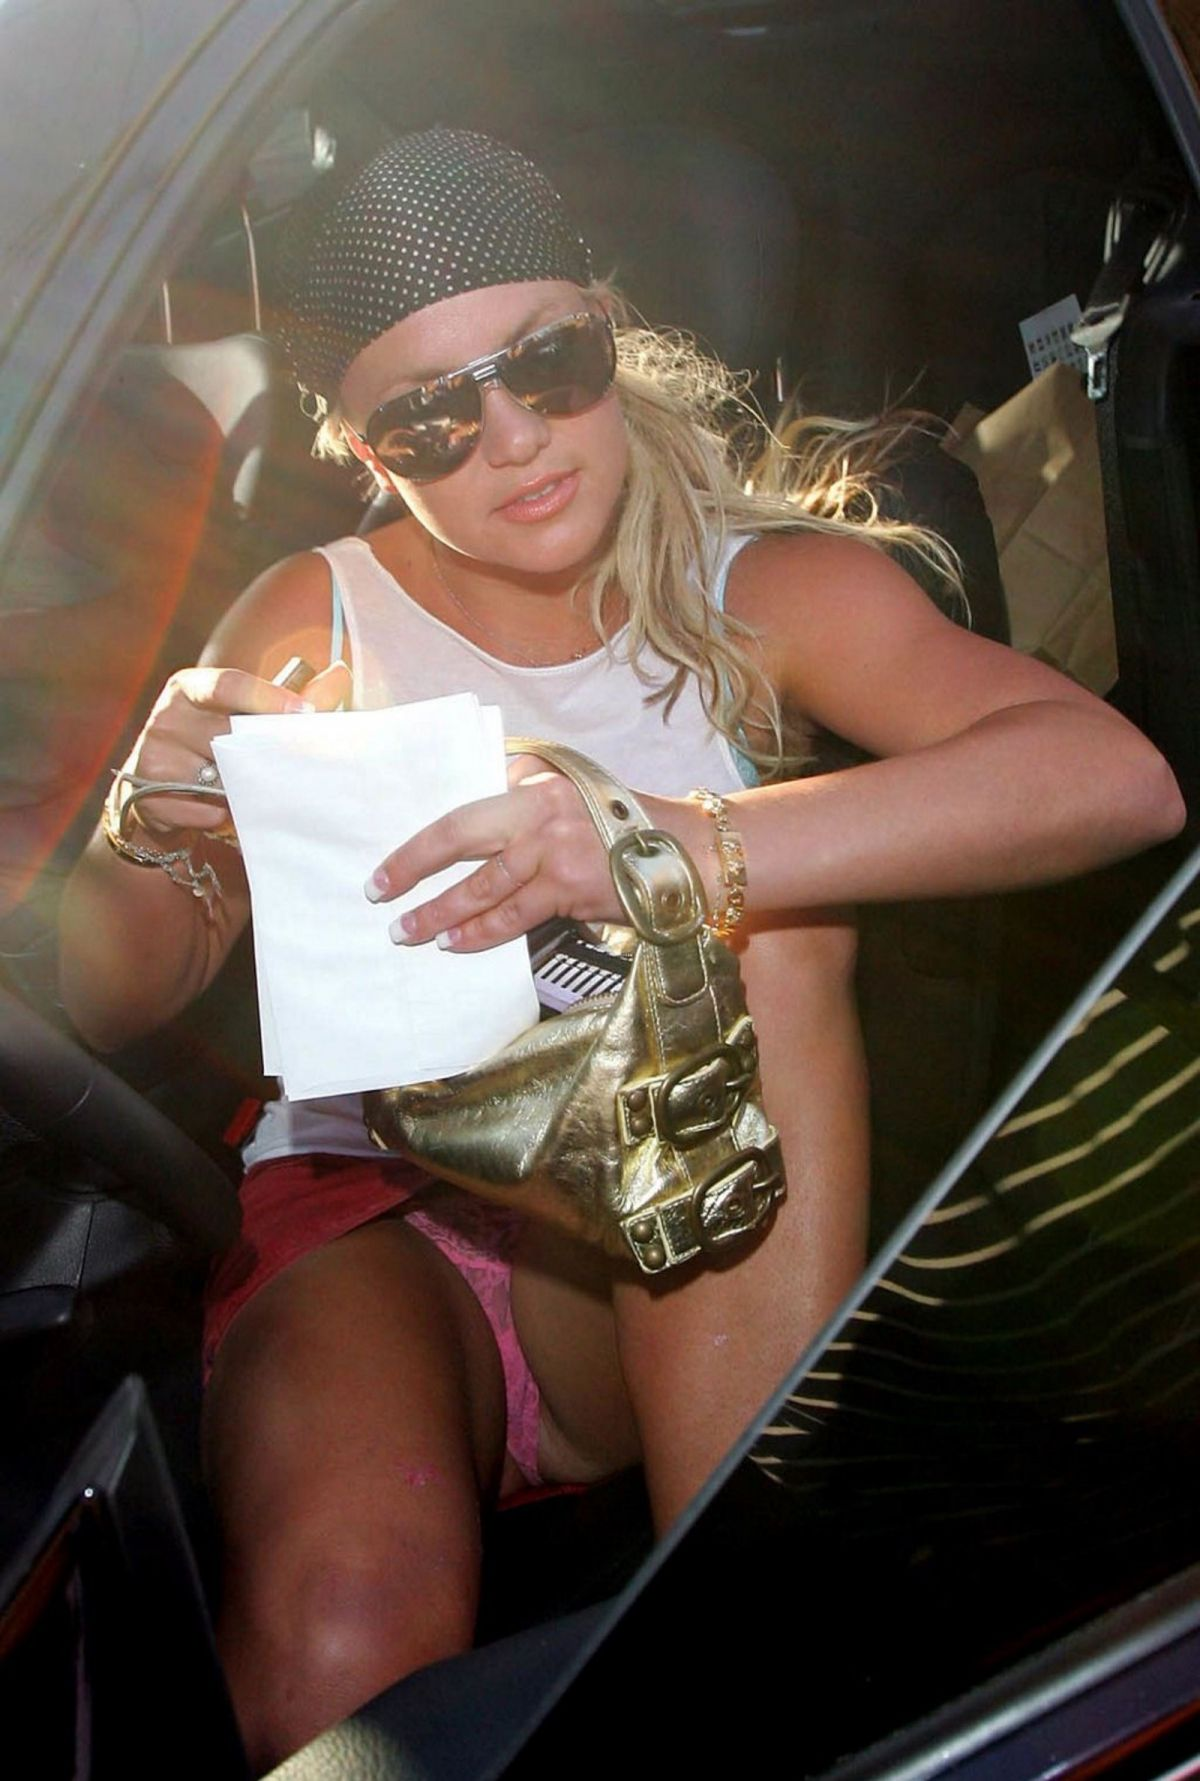 Britney spears fans are worried again after she images herself dancing half